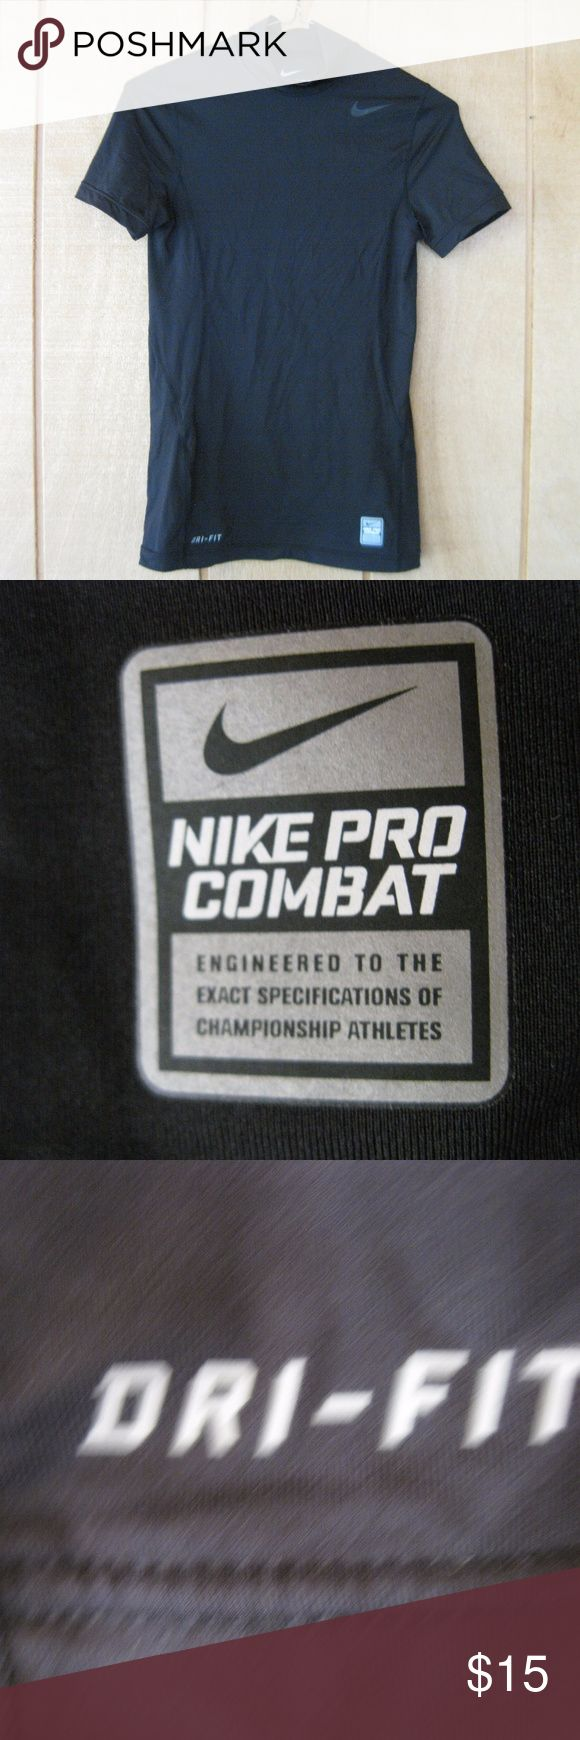 Women's Nike Pro-Combat Dri-Fit Compression Shirt Women's Nike Pro-Combat Dri-Fit Short Sleeve Compression Shirt Black Size Large  Because it's compression it is quite small but stretchy. Blk1 Nike Tops Tees - Short Sleeve